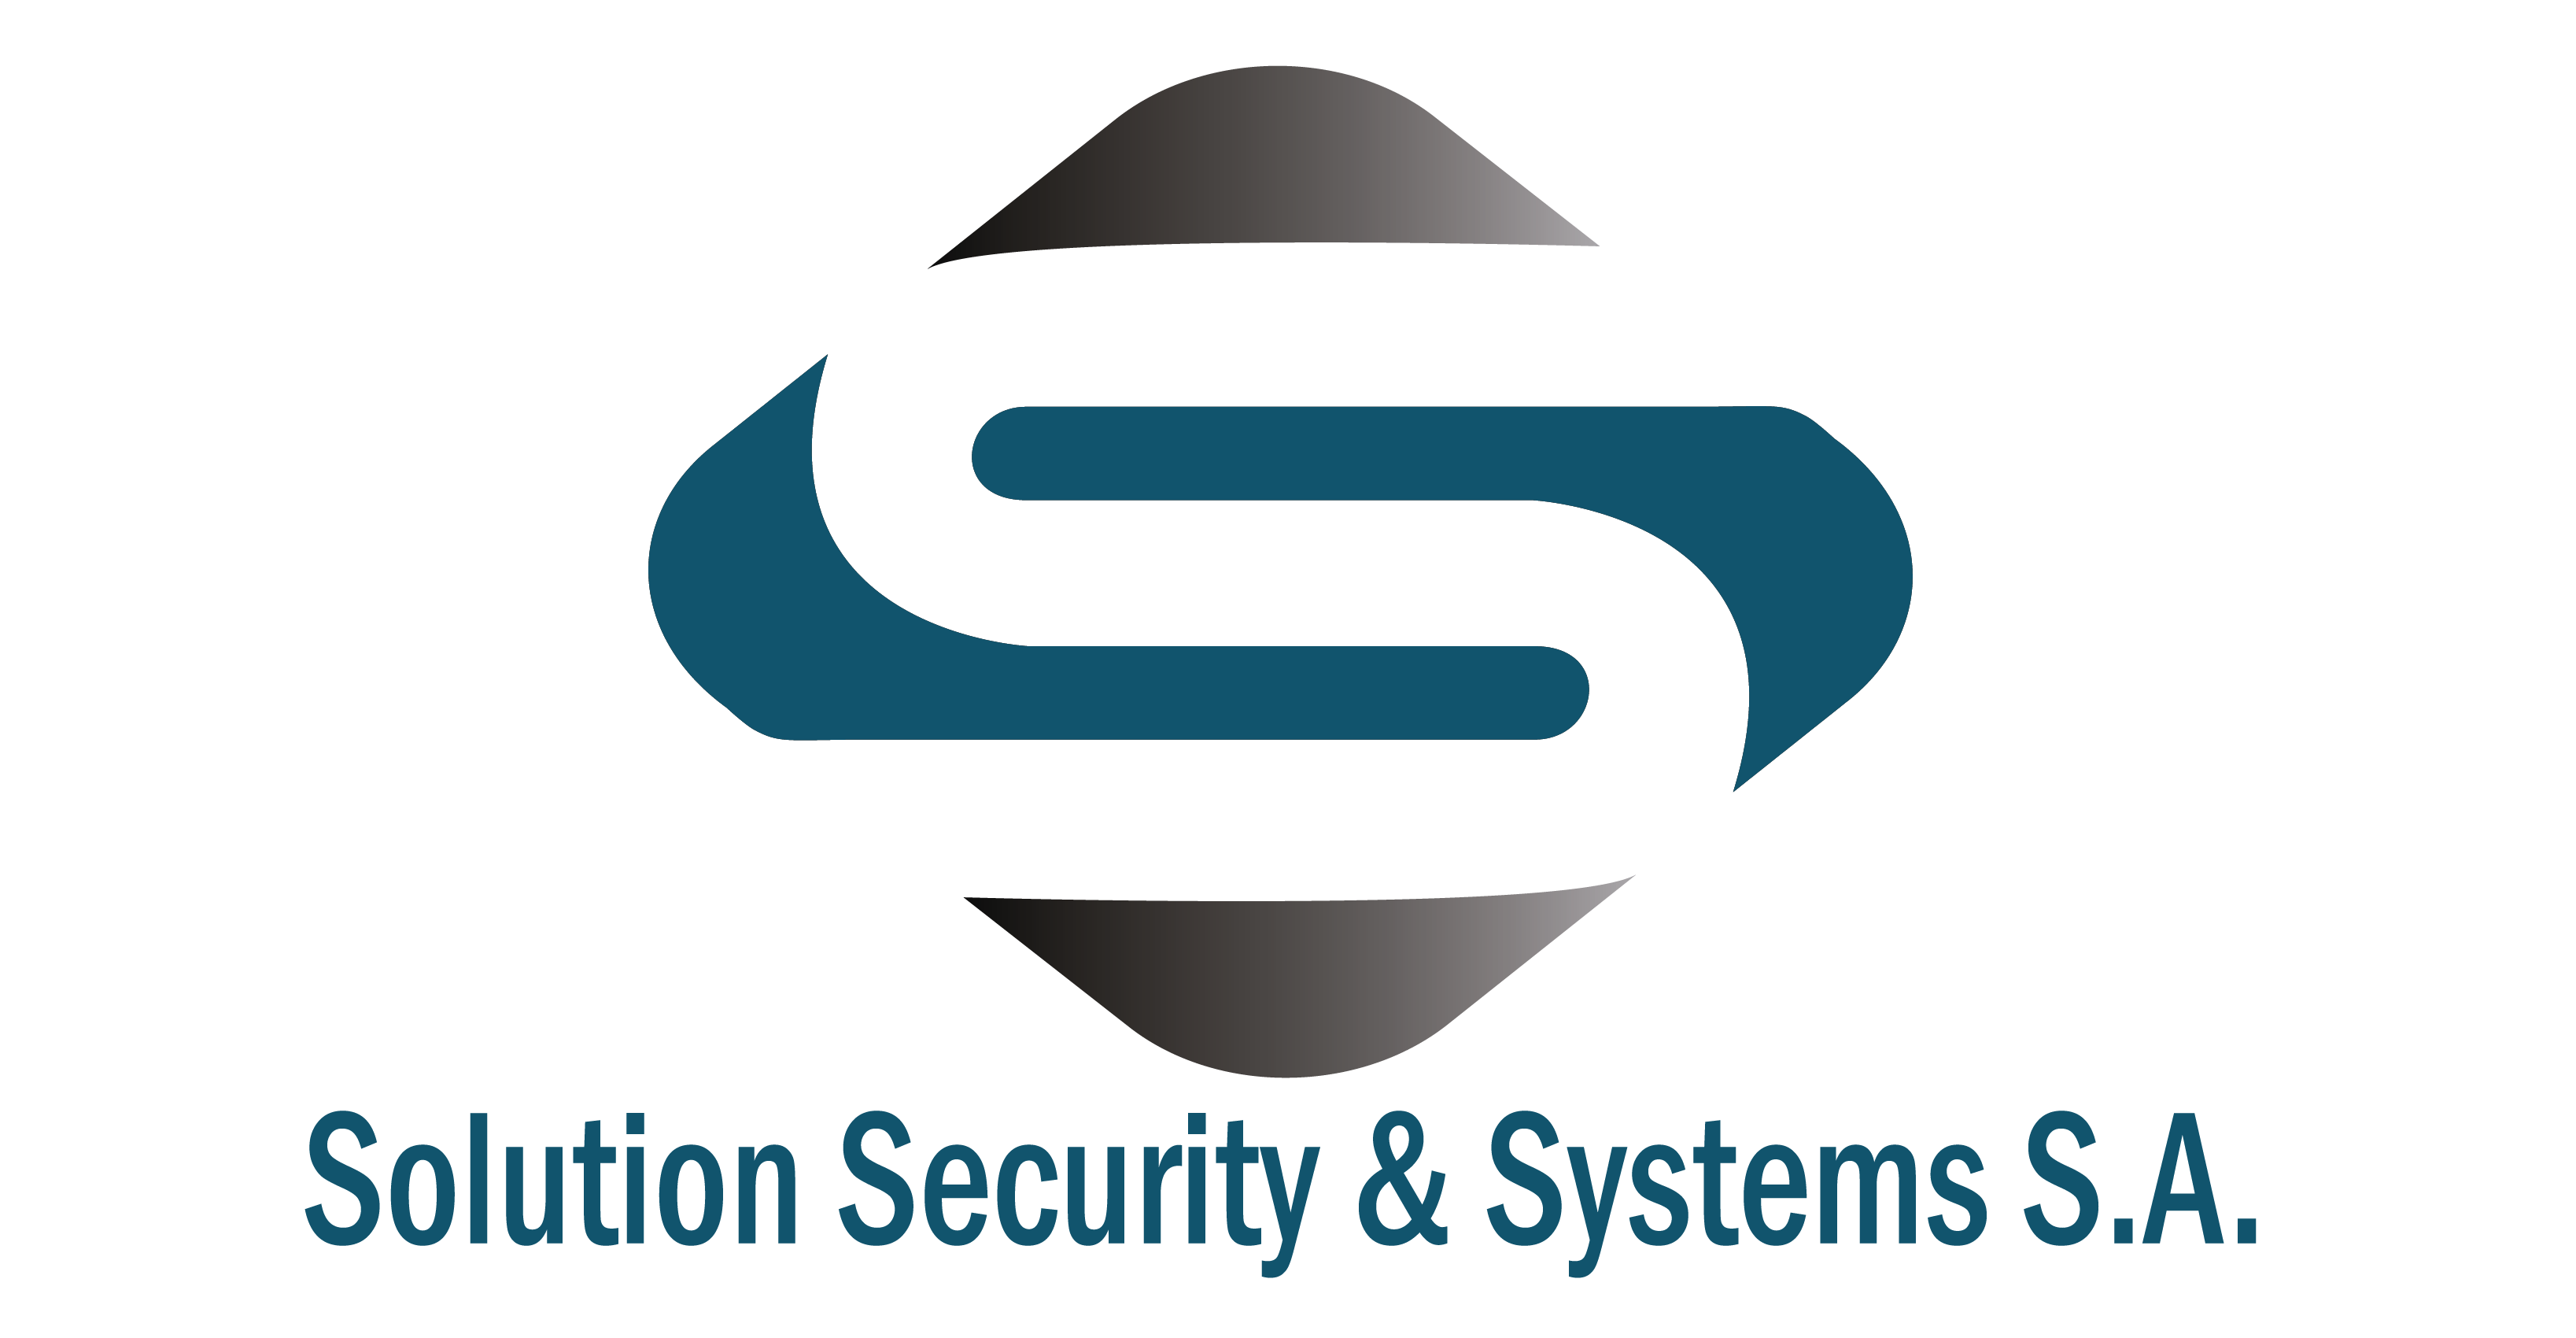 Solution Security & Systems S.A.